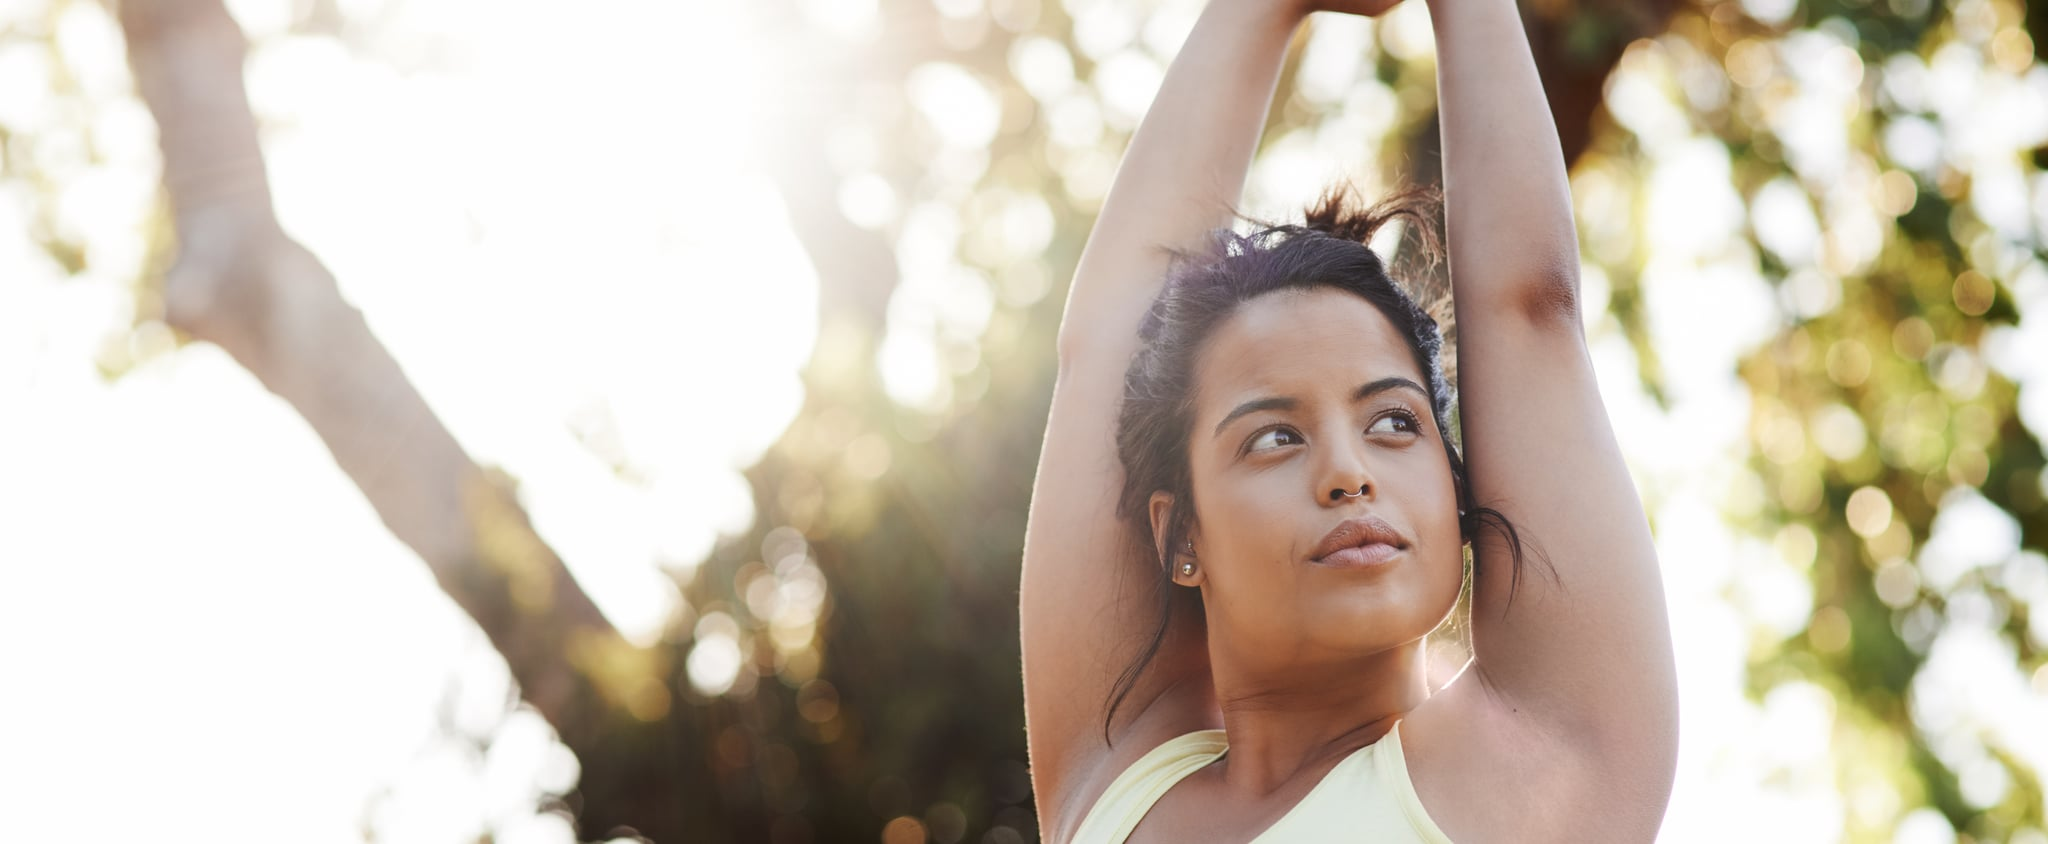 Are Morning Workouts Better For Weight Loss?